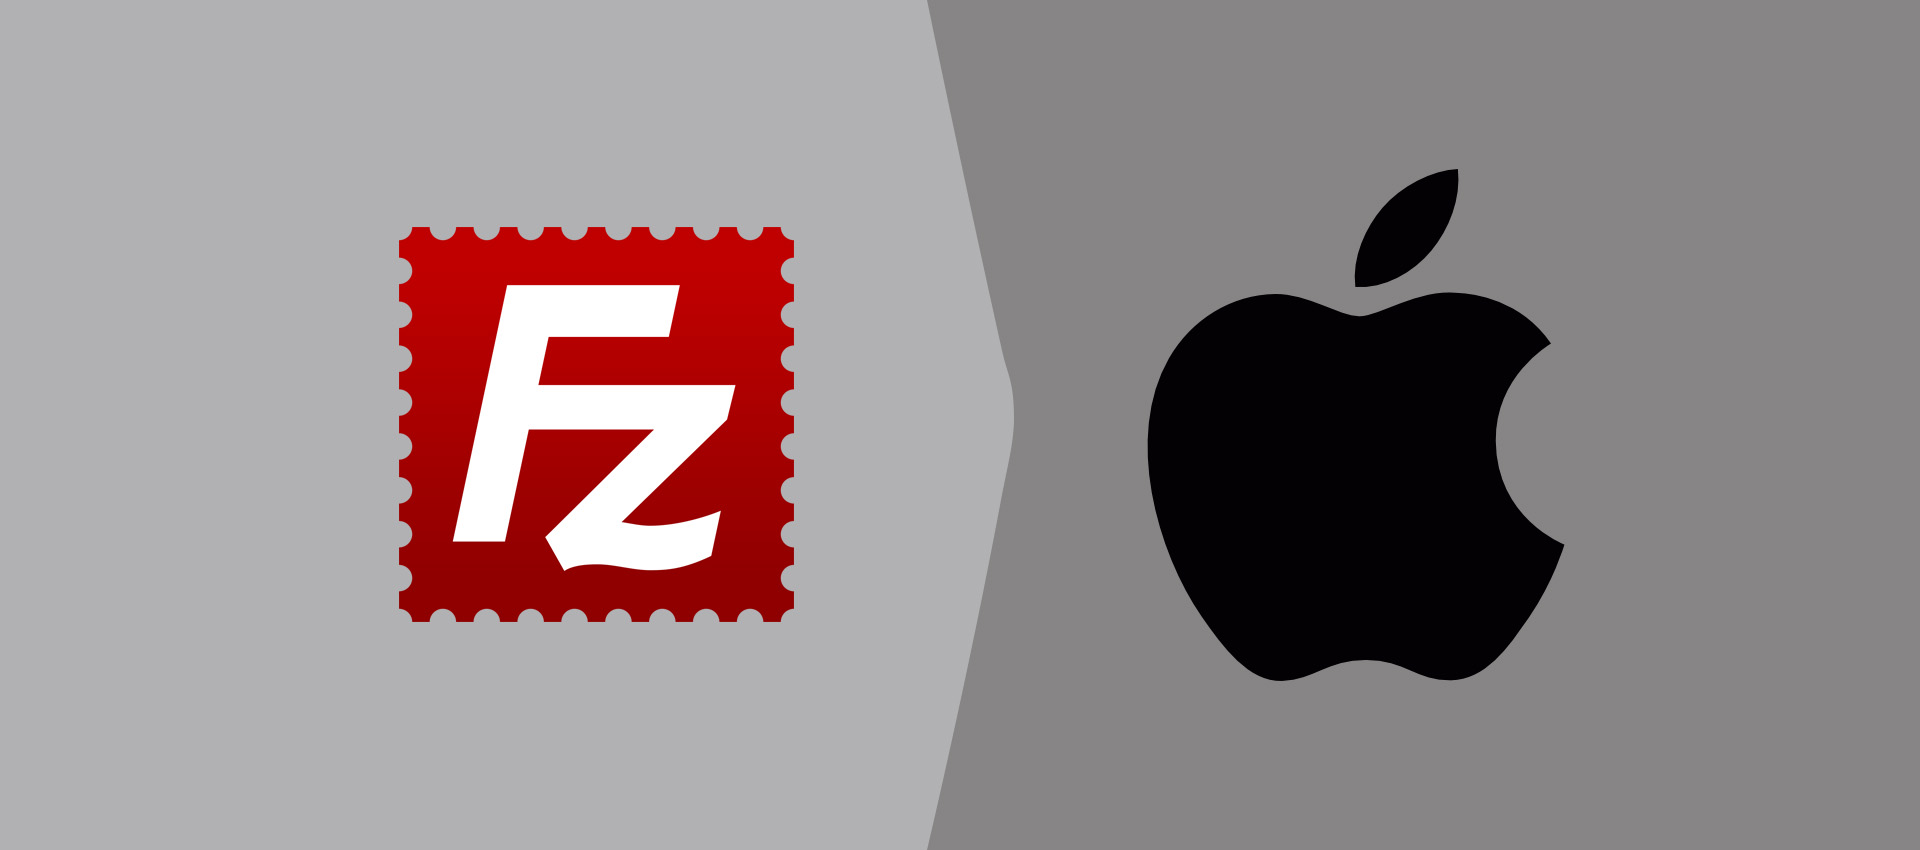 How To Install FileZilla FTP Client On Mac